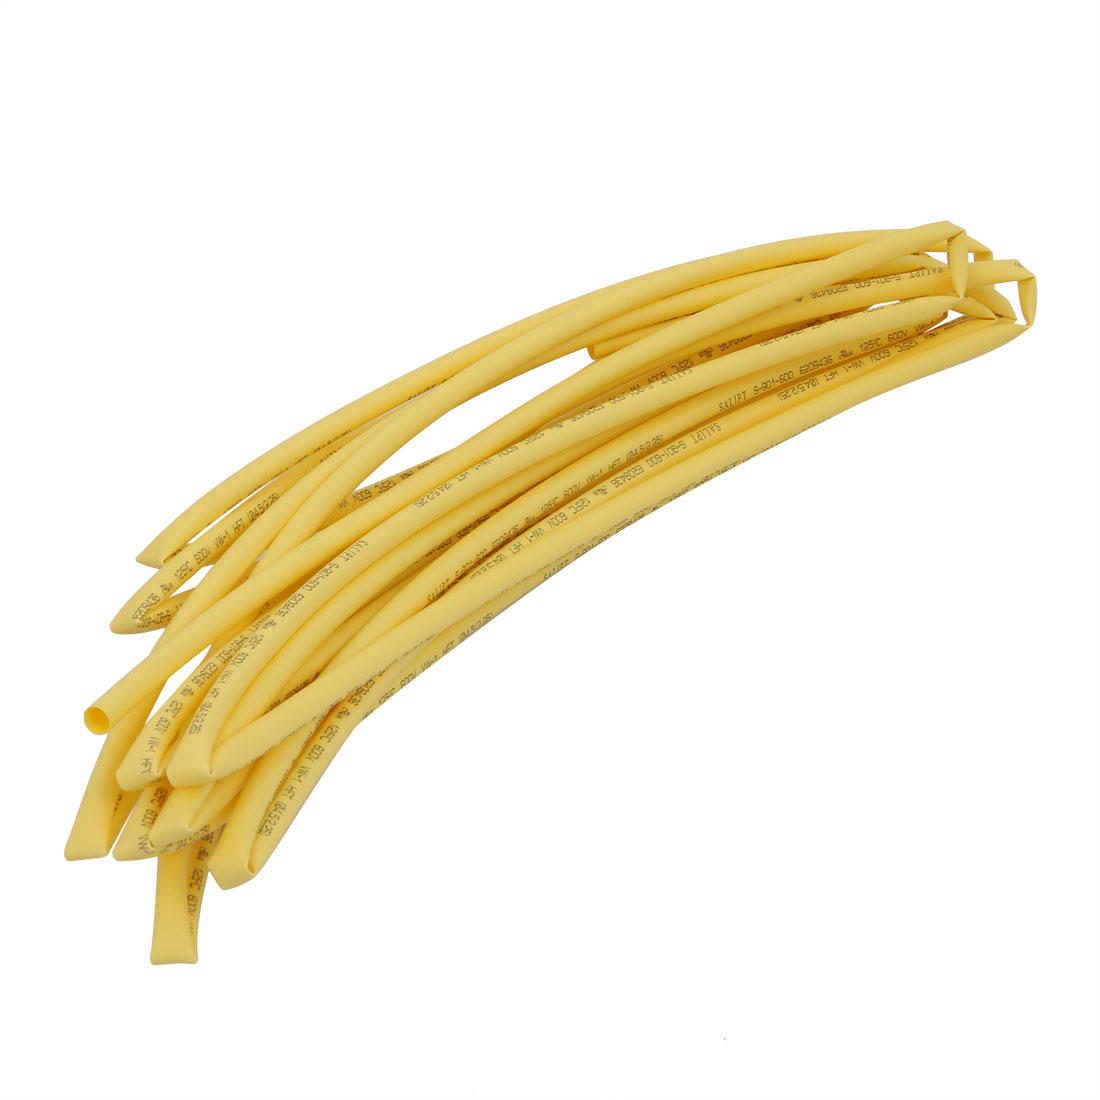 5M 0.18in Inner Dia Polyolefin Flame Retardant Tube Yellow for Wire Repairing